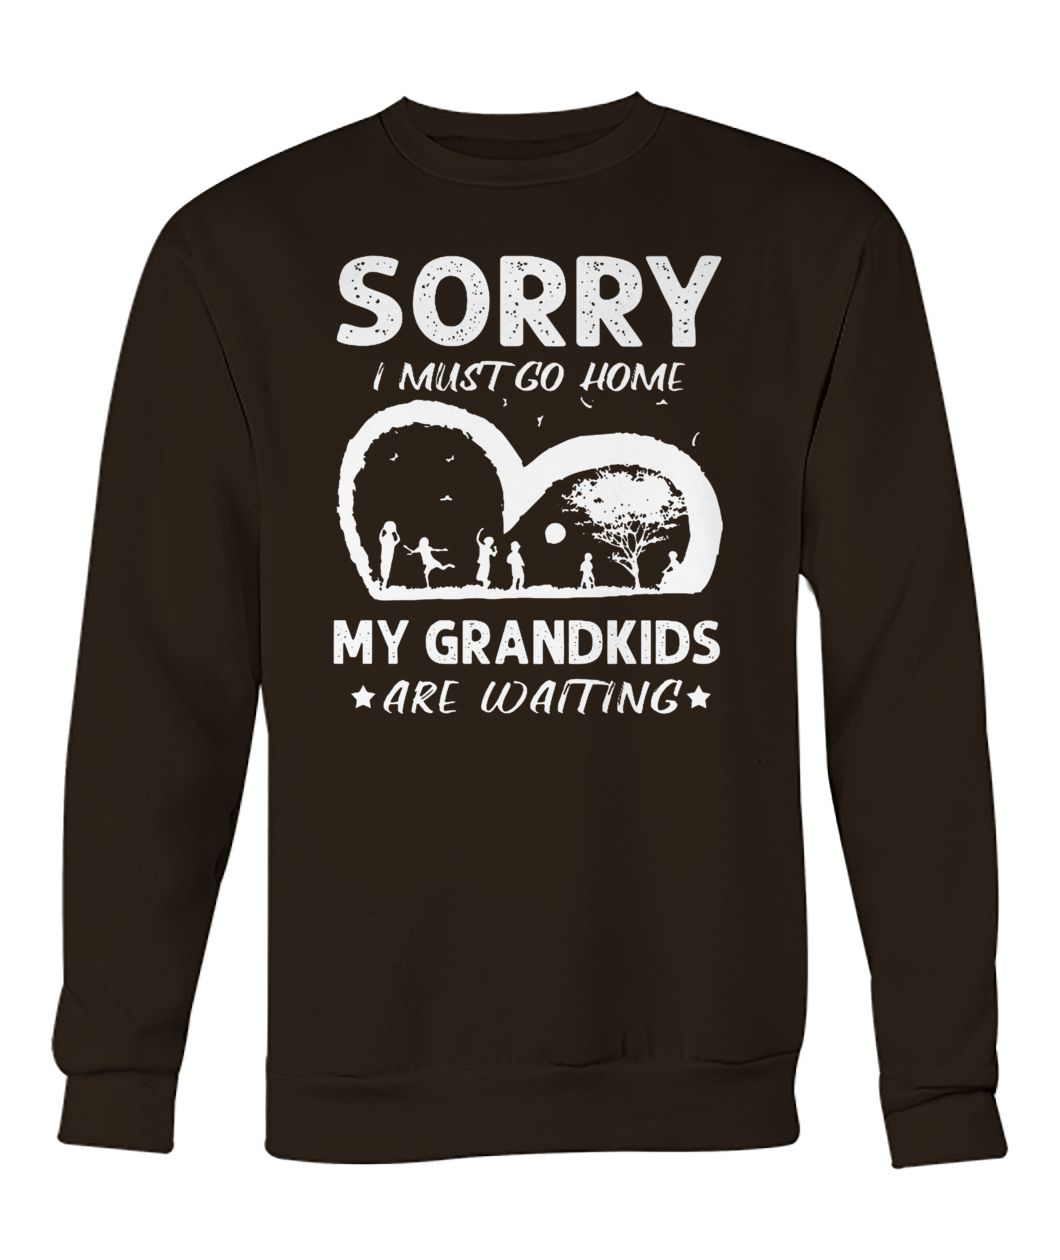 Sorry I must go home my grandkids are waiting crew neck sweatshirt